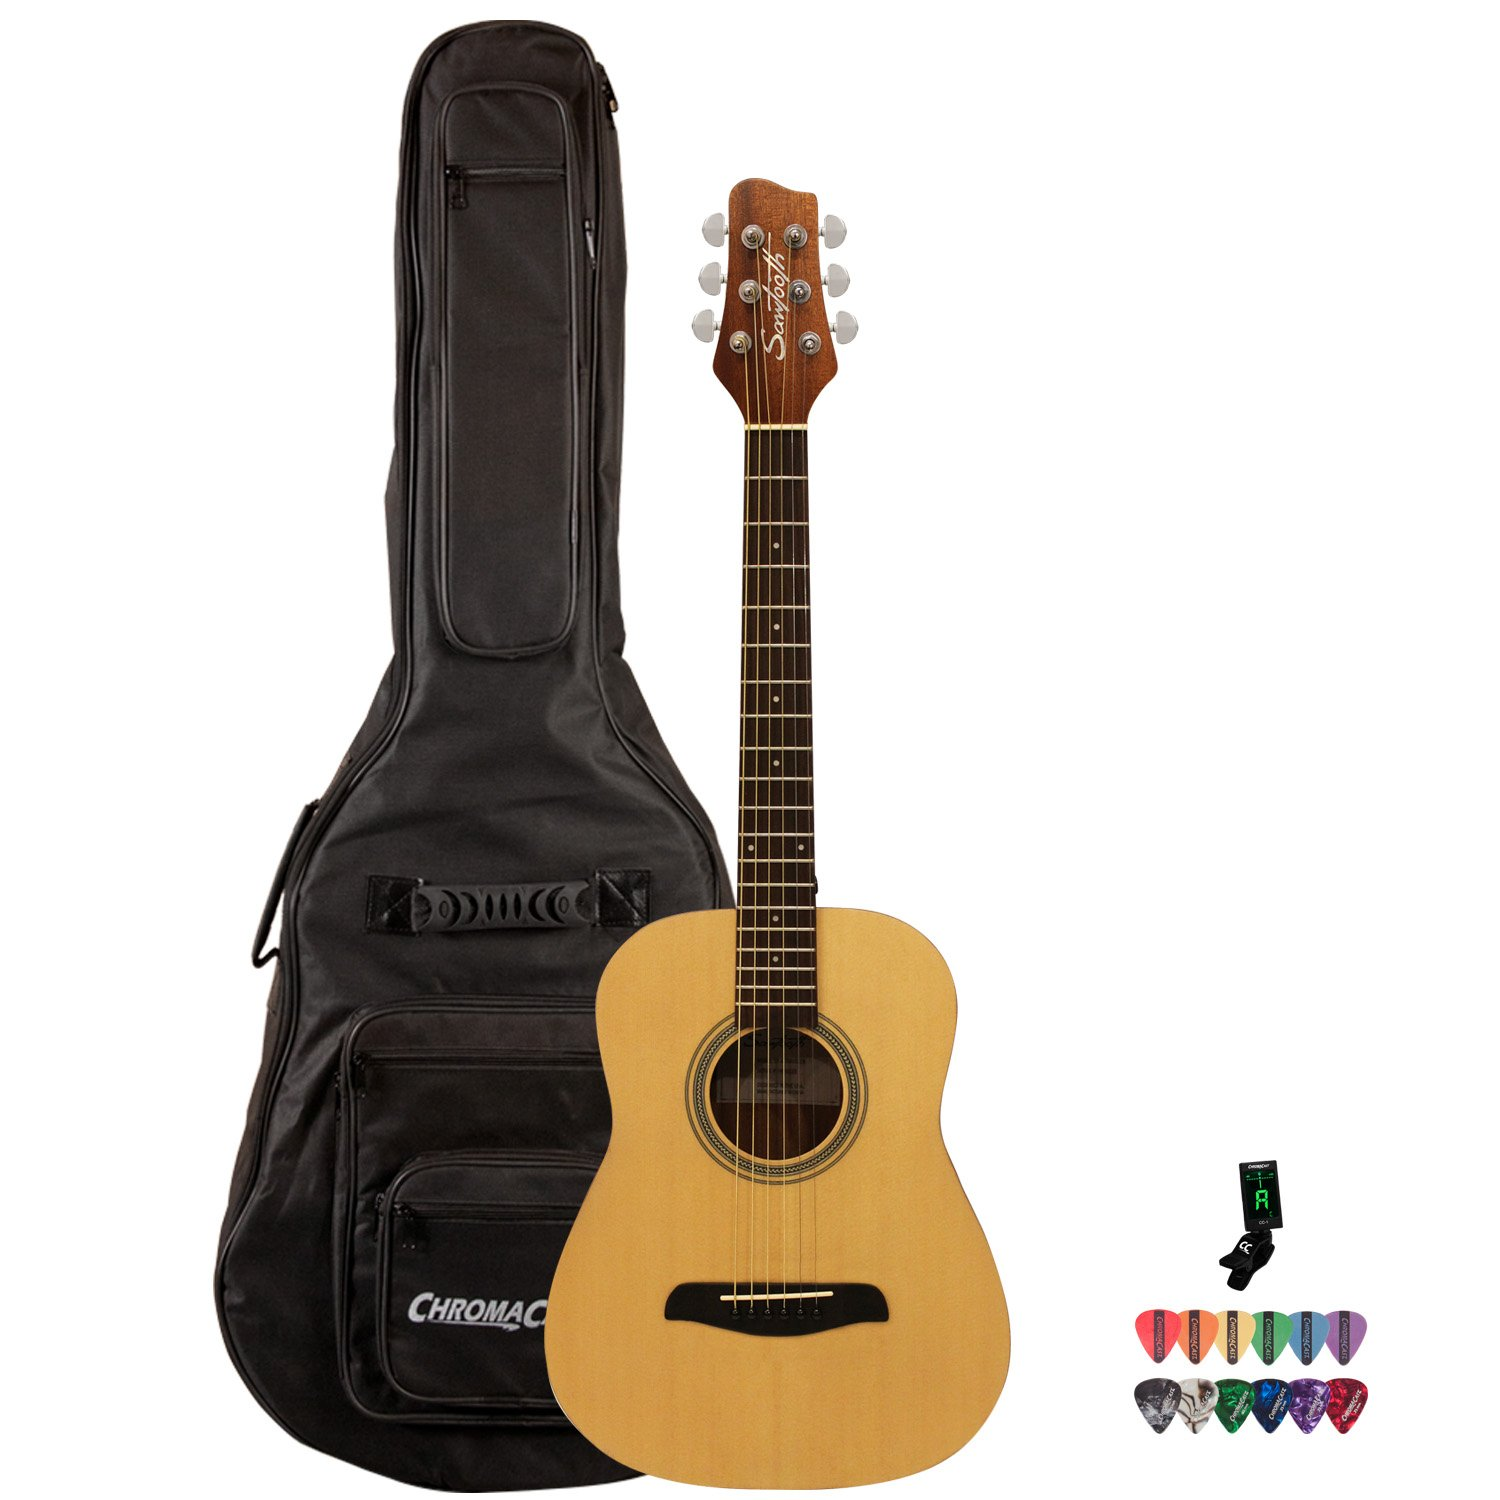 Sawtooth ST-A-TRAVELER-KIT-1 Spruce Traveler Acoustic Guitar with ChromaCast Gig Bag, & Tuner